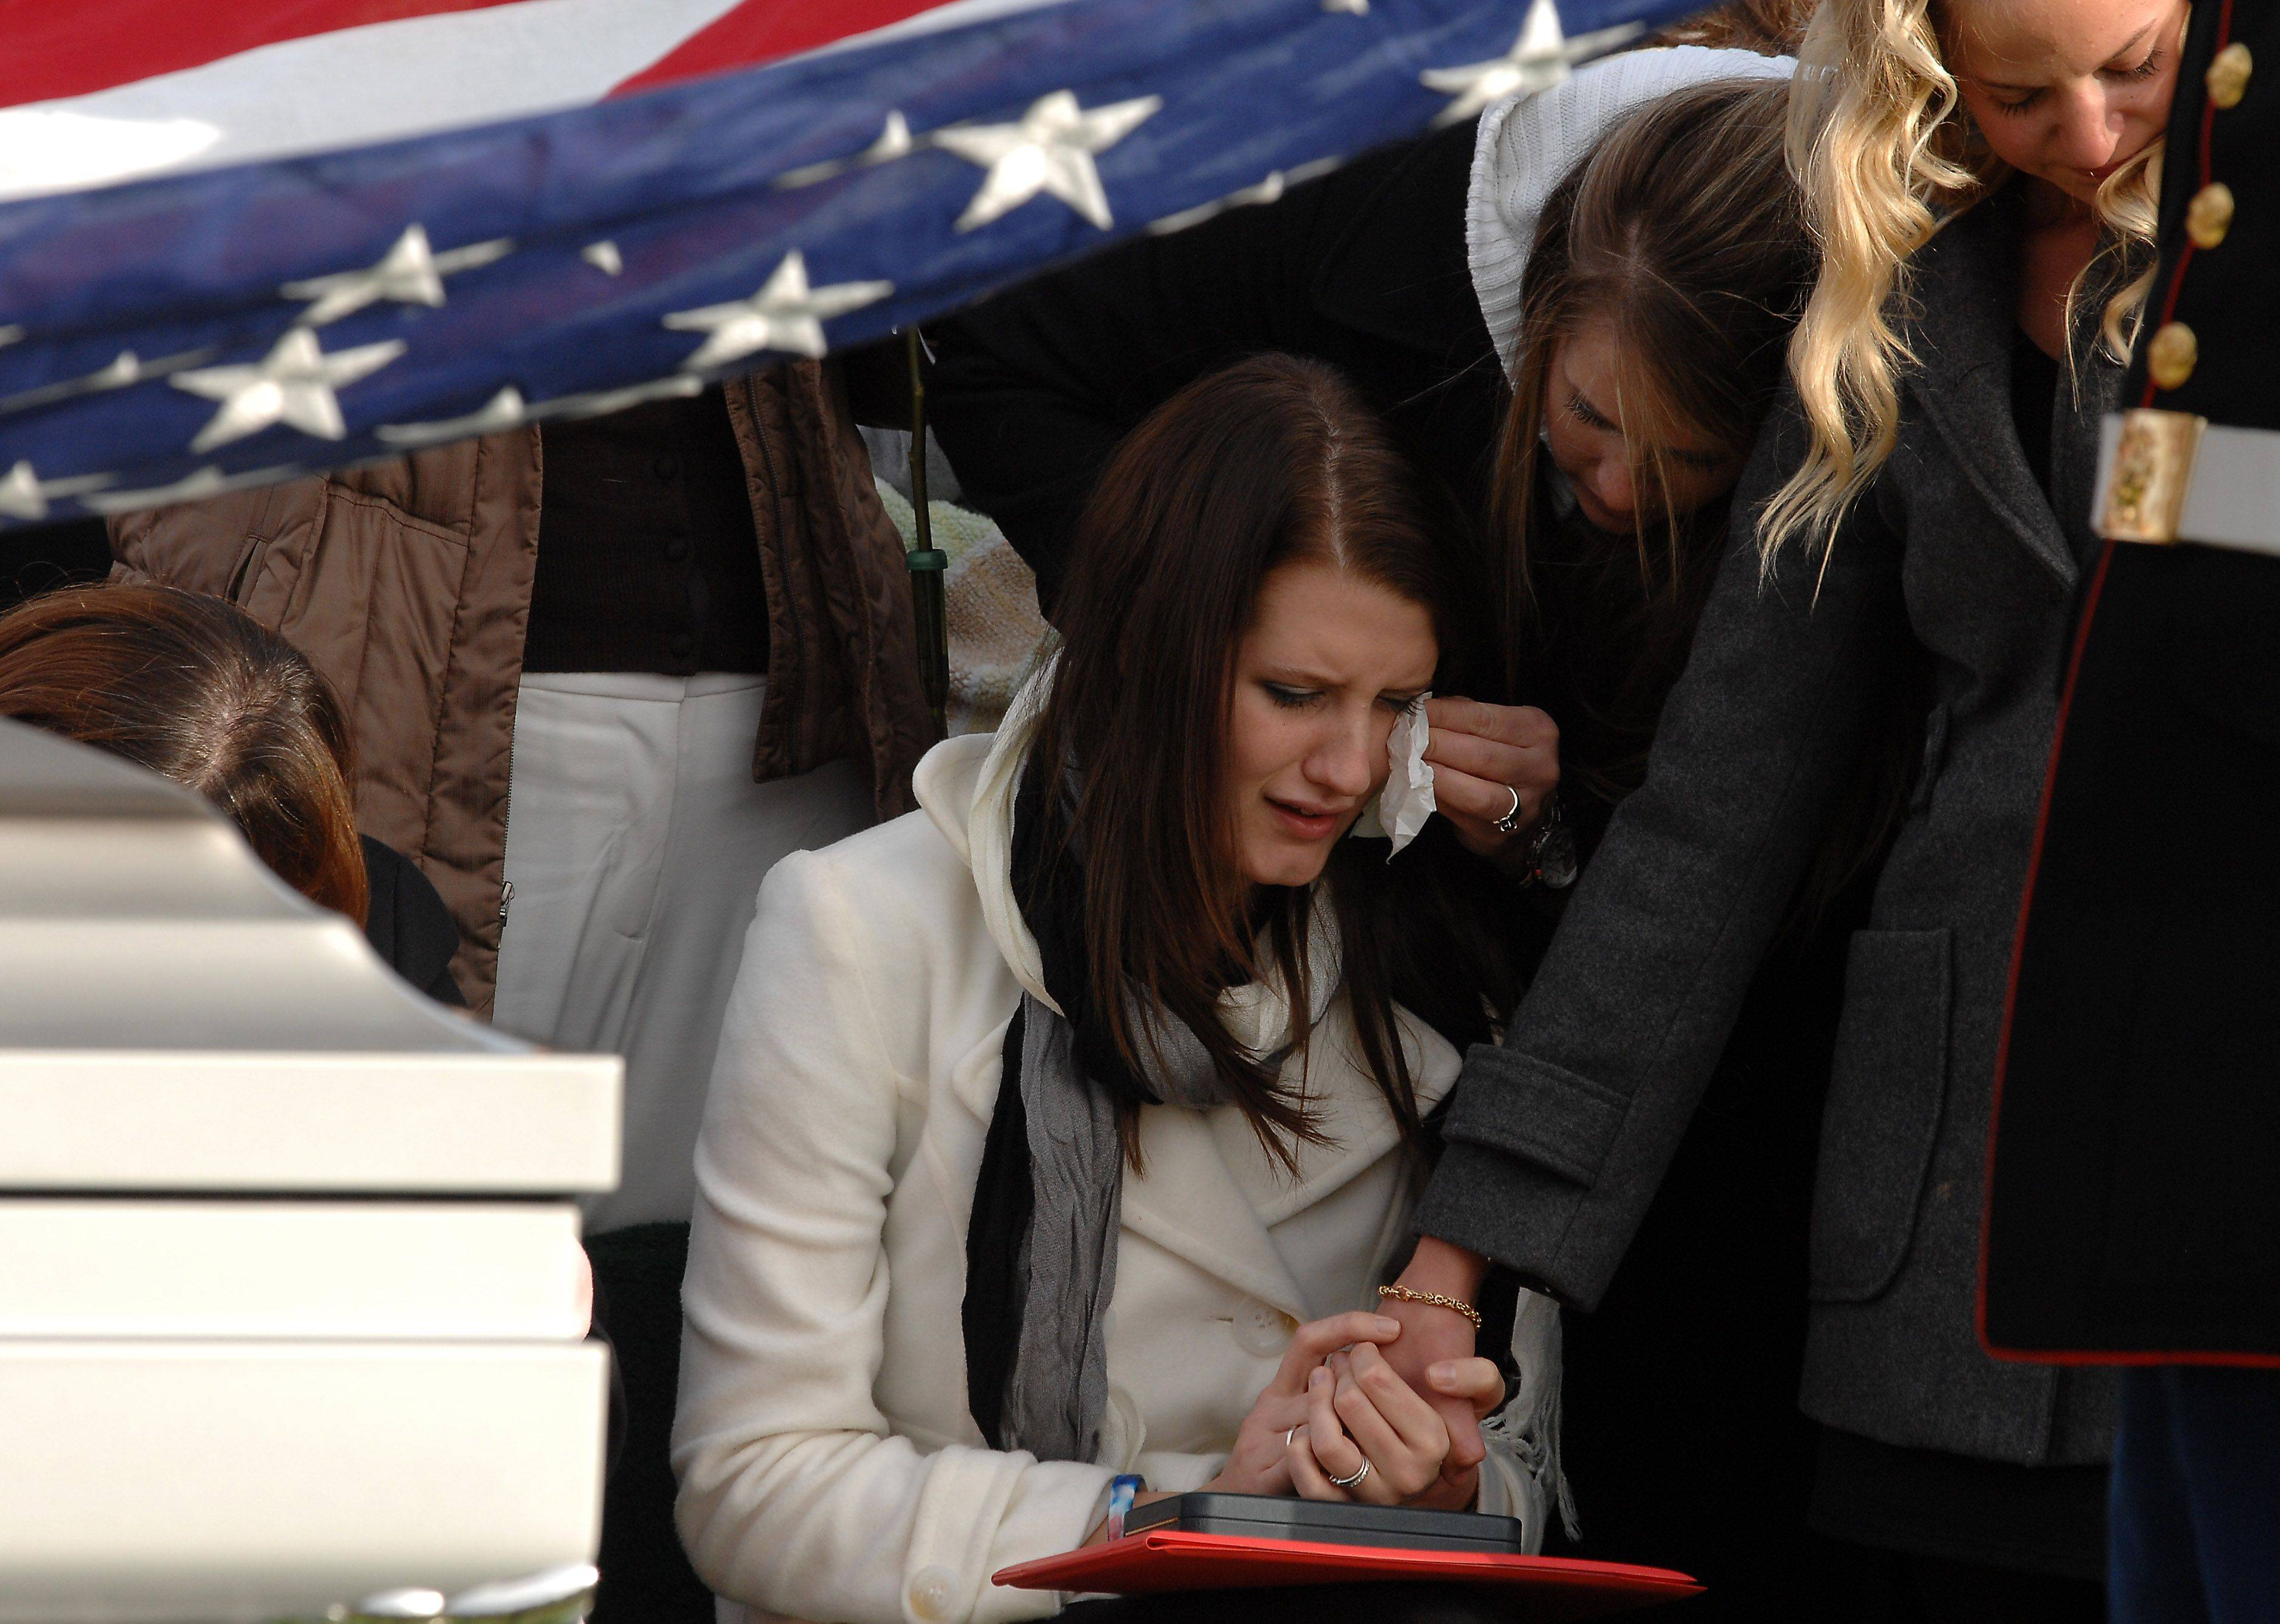 Katie Stack, wife of Lance Cpl. James Stack, wipes away tears as the flag is removed from her husband's casket Saturday at Memory Gardens in Arlington Heights.